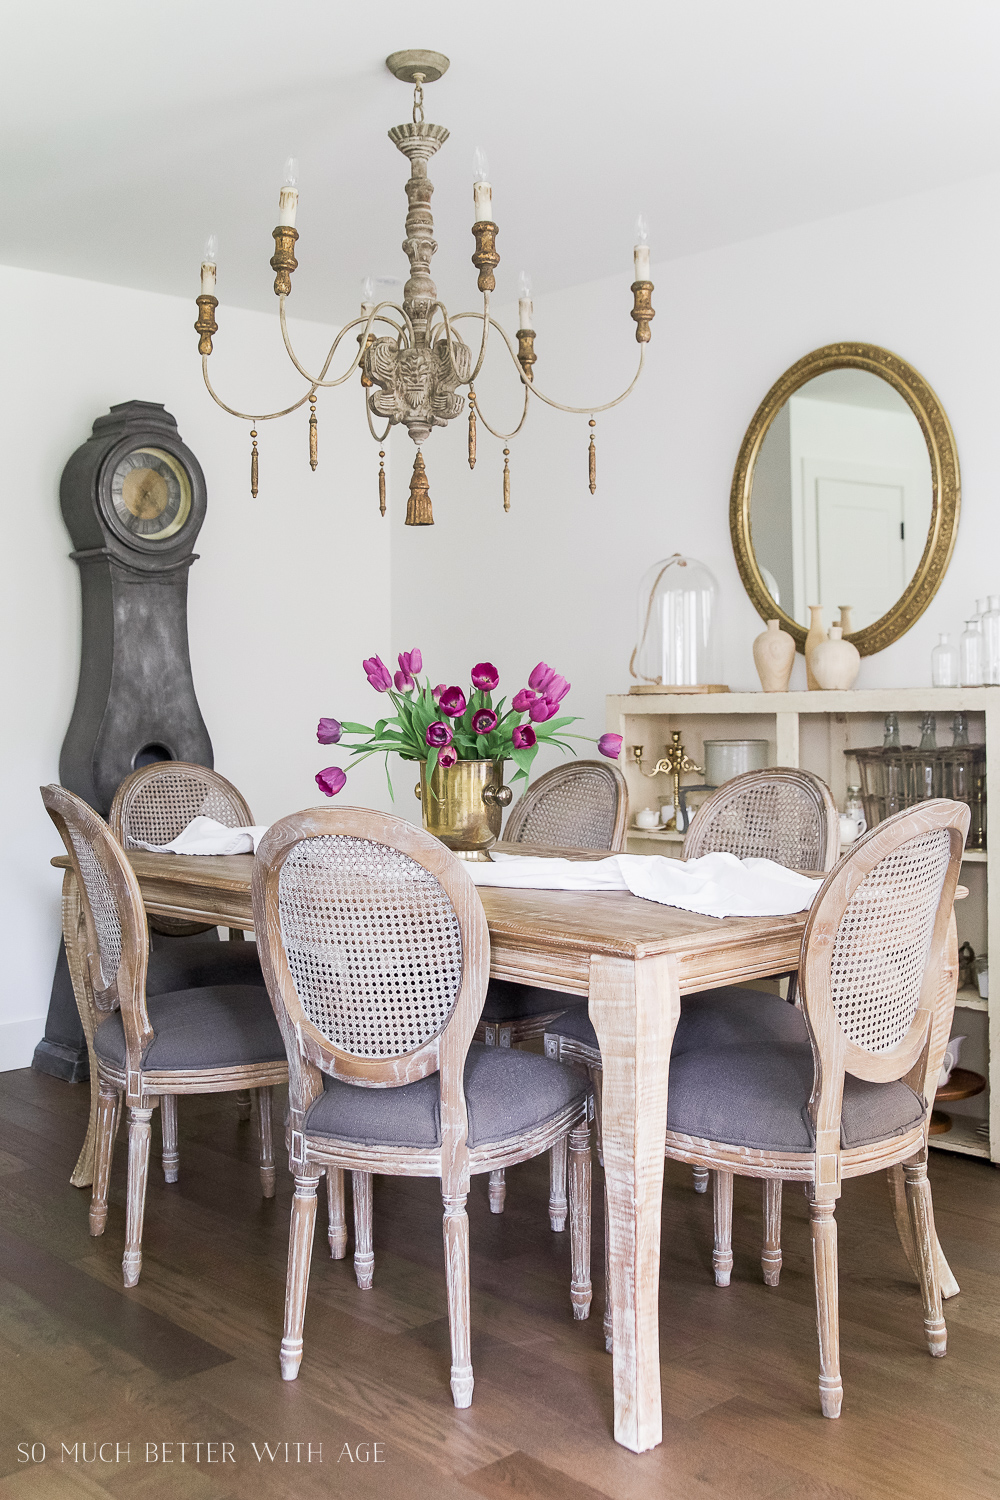 Superior French Vintage Dining Room/French Chandelier   So Much Better With Age